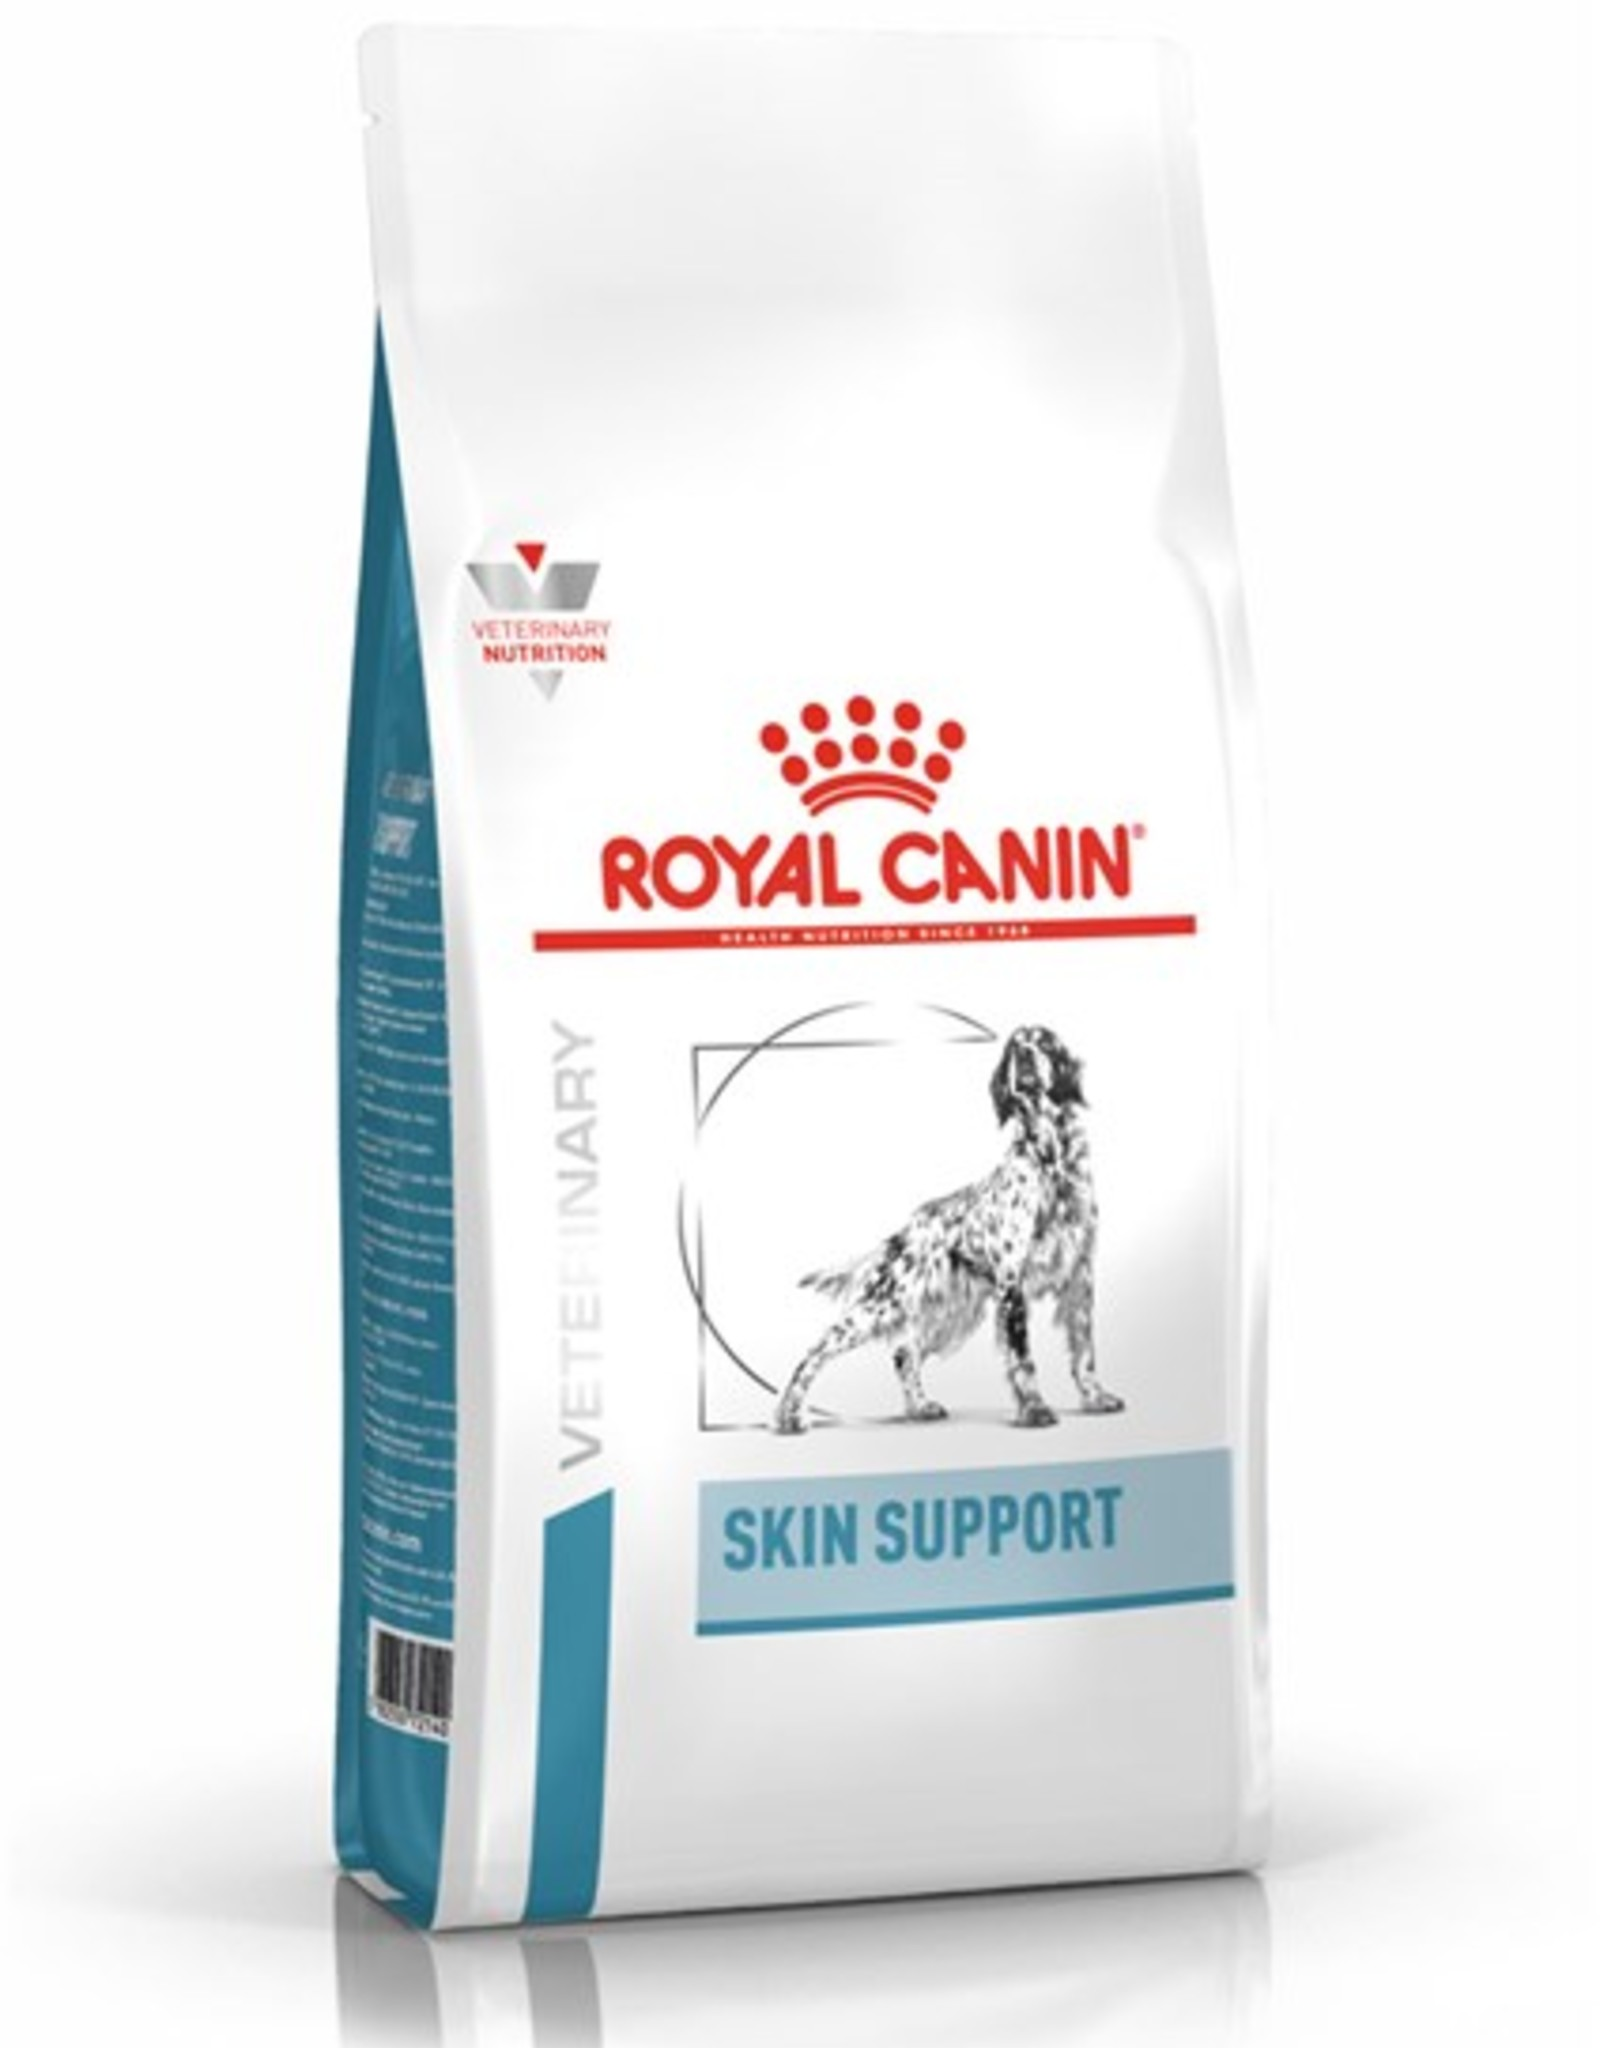 Royal Canin Royal Canin Skin Support Chien 7kg